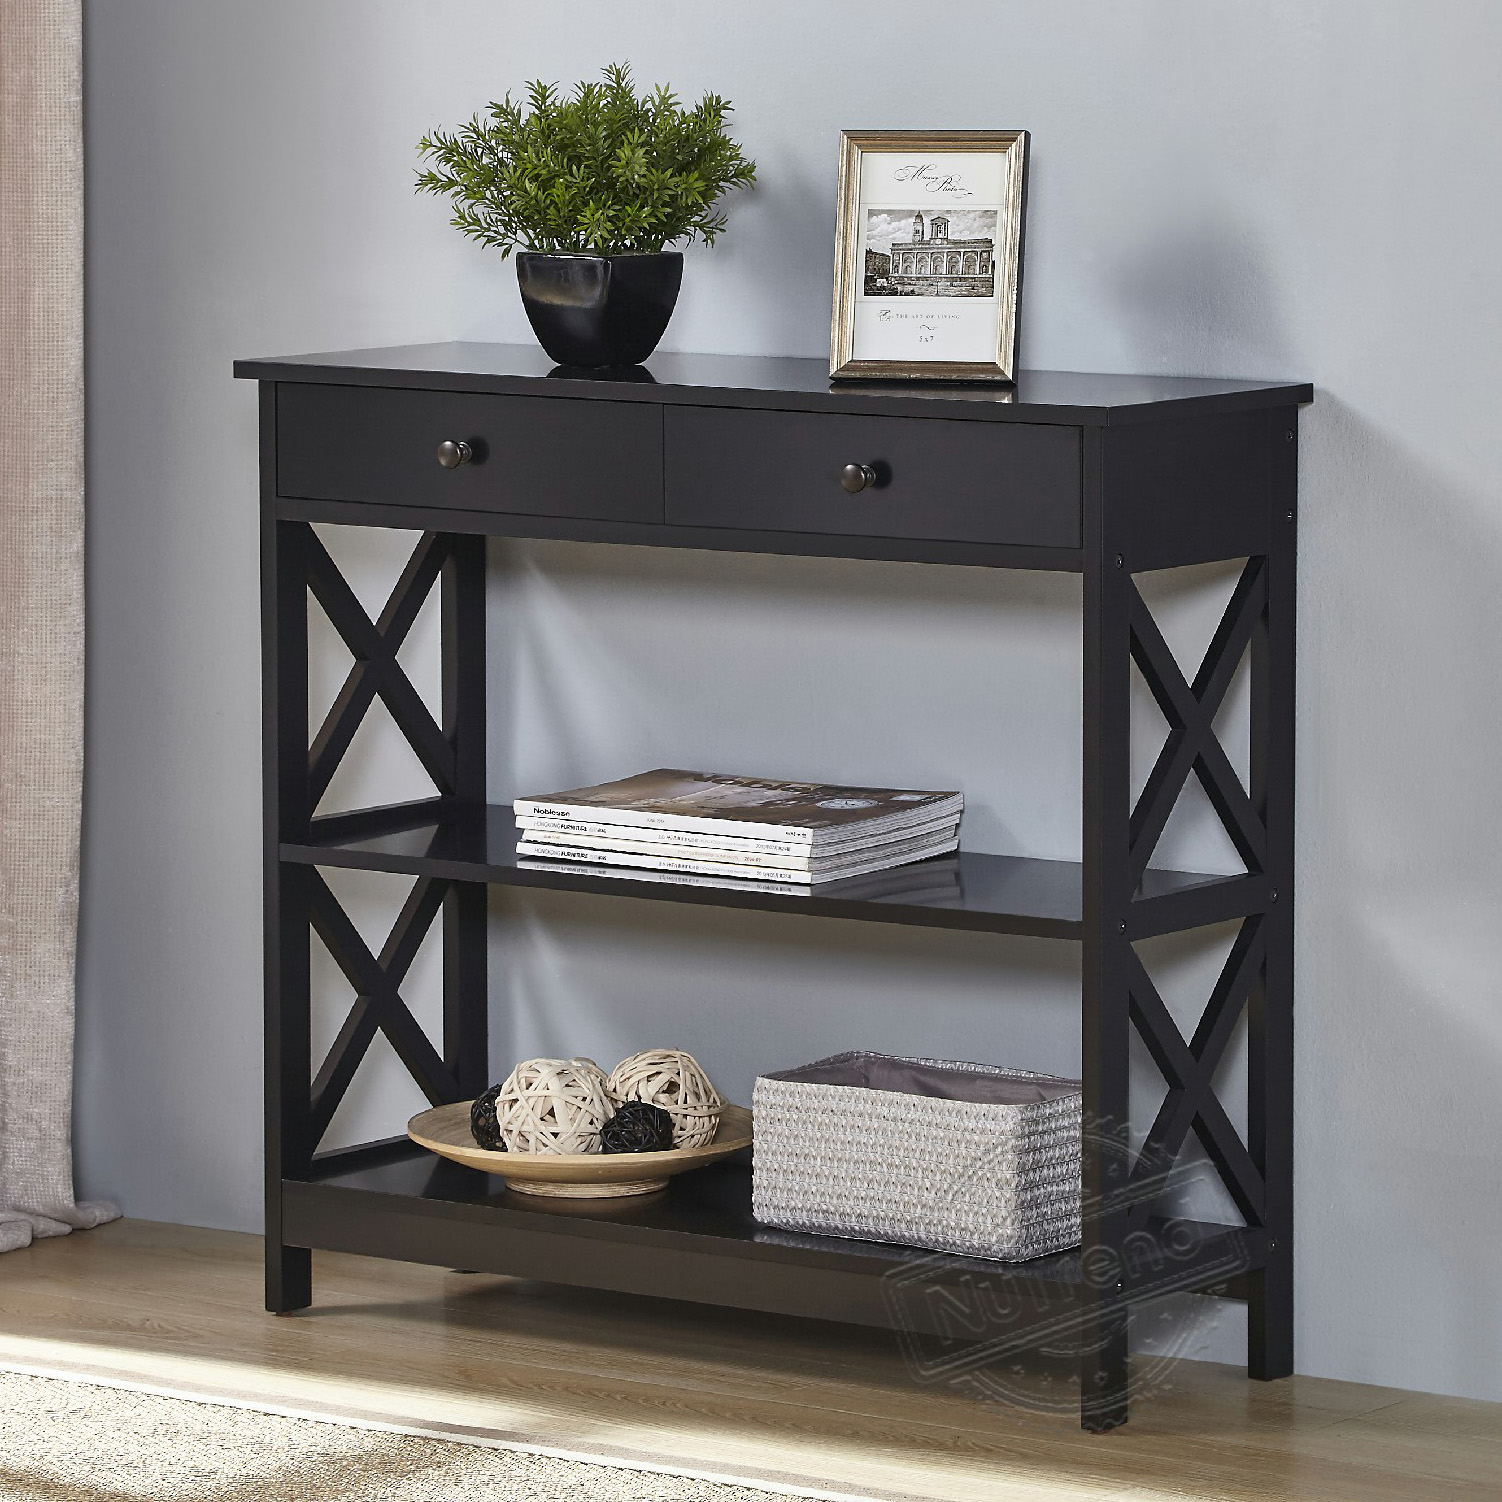 Cross Black Console Table with 2 Drawers and Shelves 203140